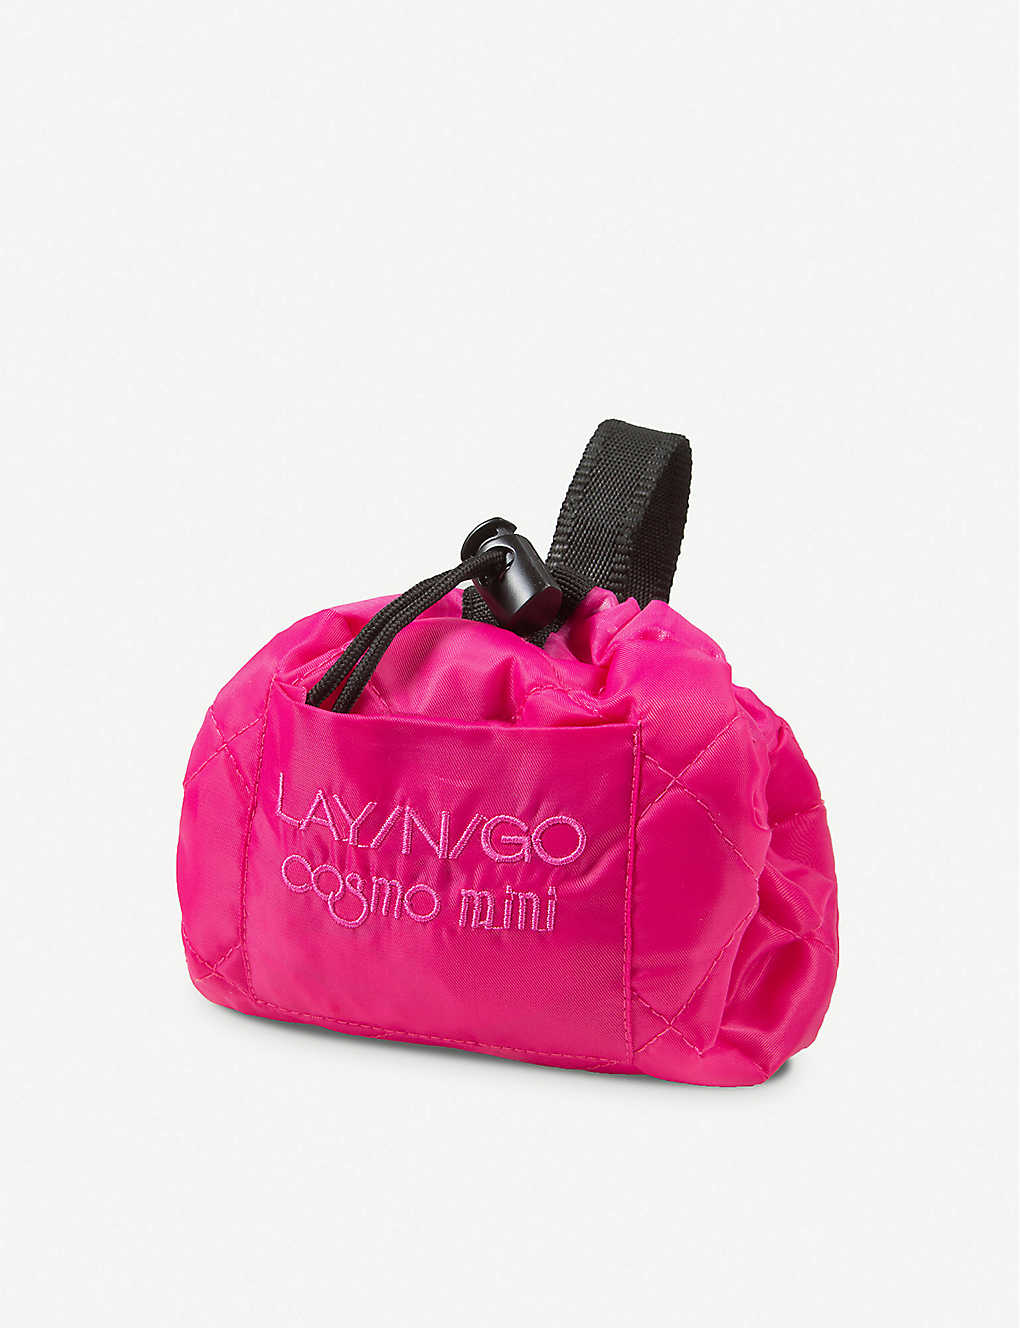 LAY-N-GO: Cosmo mini make-up bag 33cm